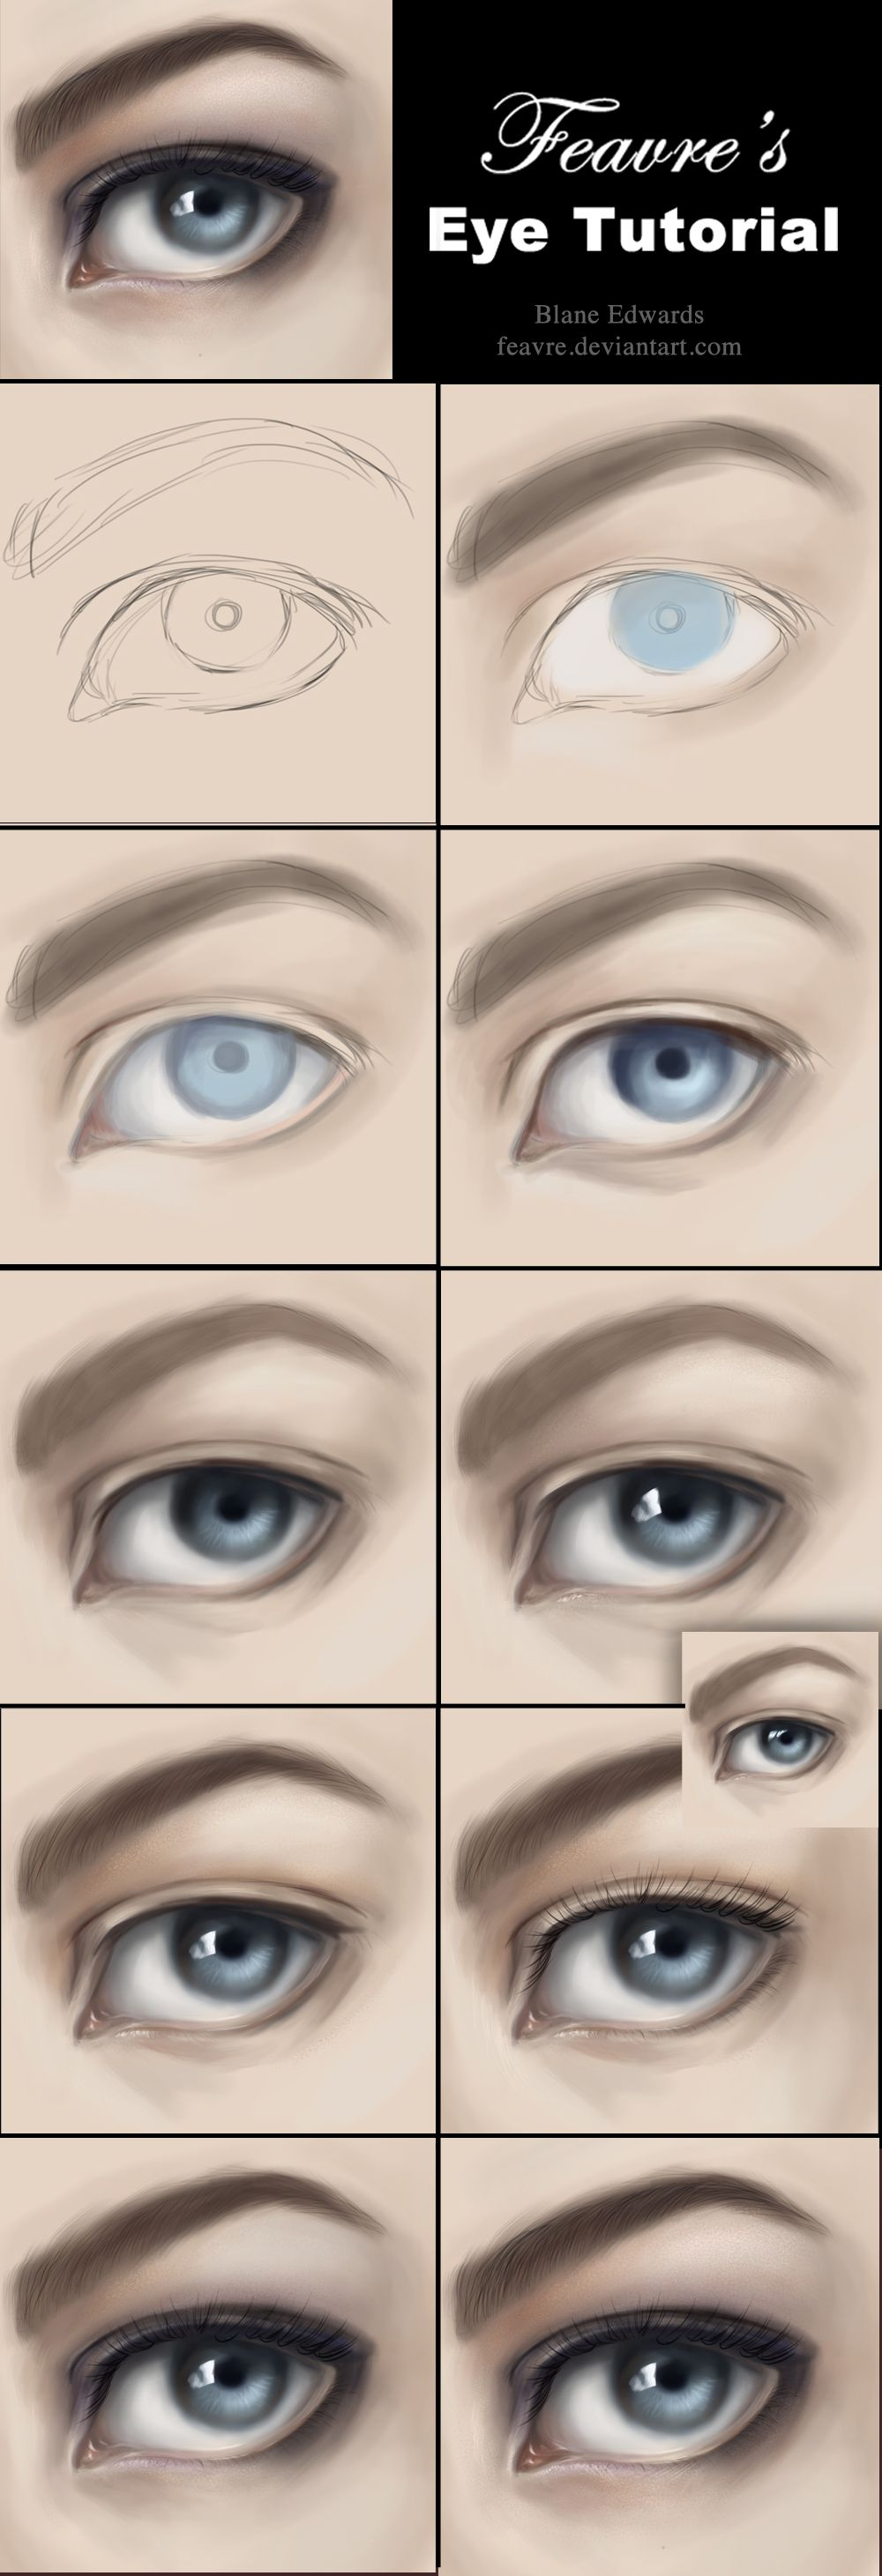 how_to_paint_realistic_eyes_tutorial_by_feavre-d6bkfrd.jpg 1,000×2,922 pixels